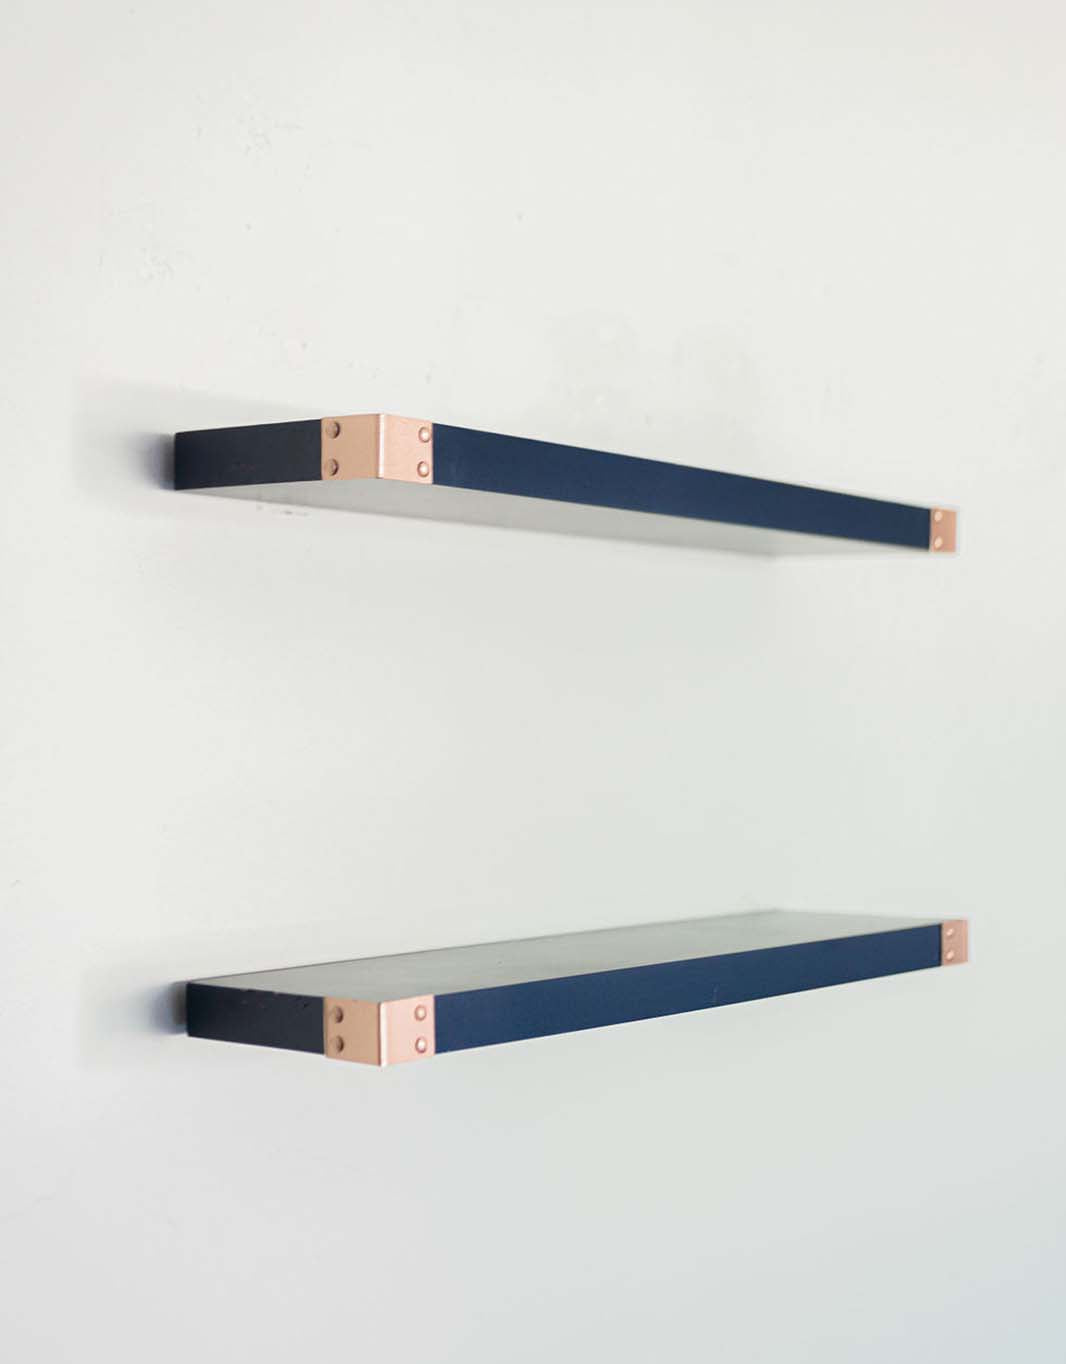 The Eli - Dark Blue Floating Shelves with Rose Gold Decorative Iron Corners, Modern All Wood Wall Shelves - Set of 2 - Bedroom, Bathroom, Kitchen - 24 x 6 x 1.5 in